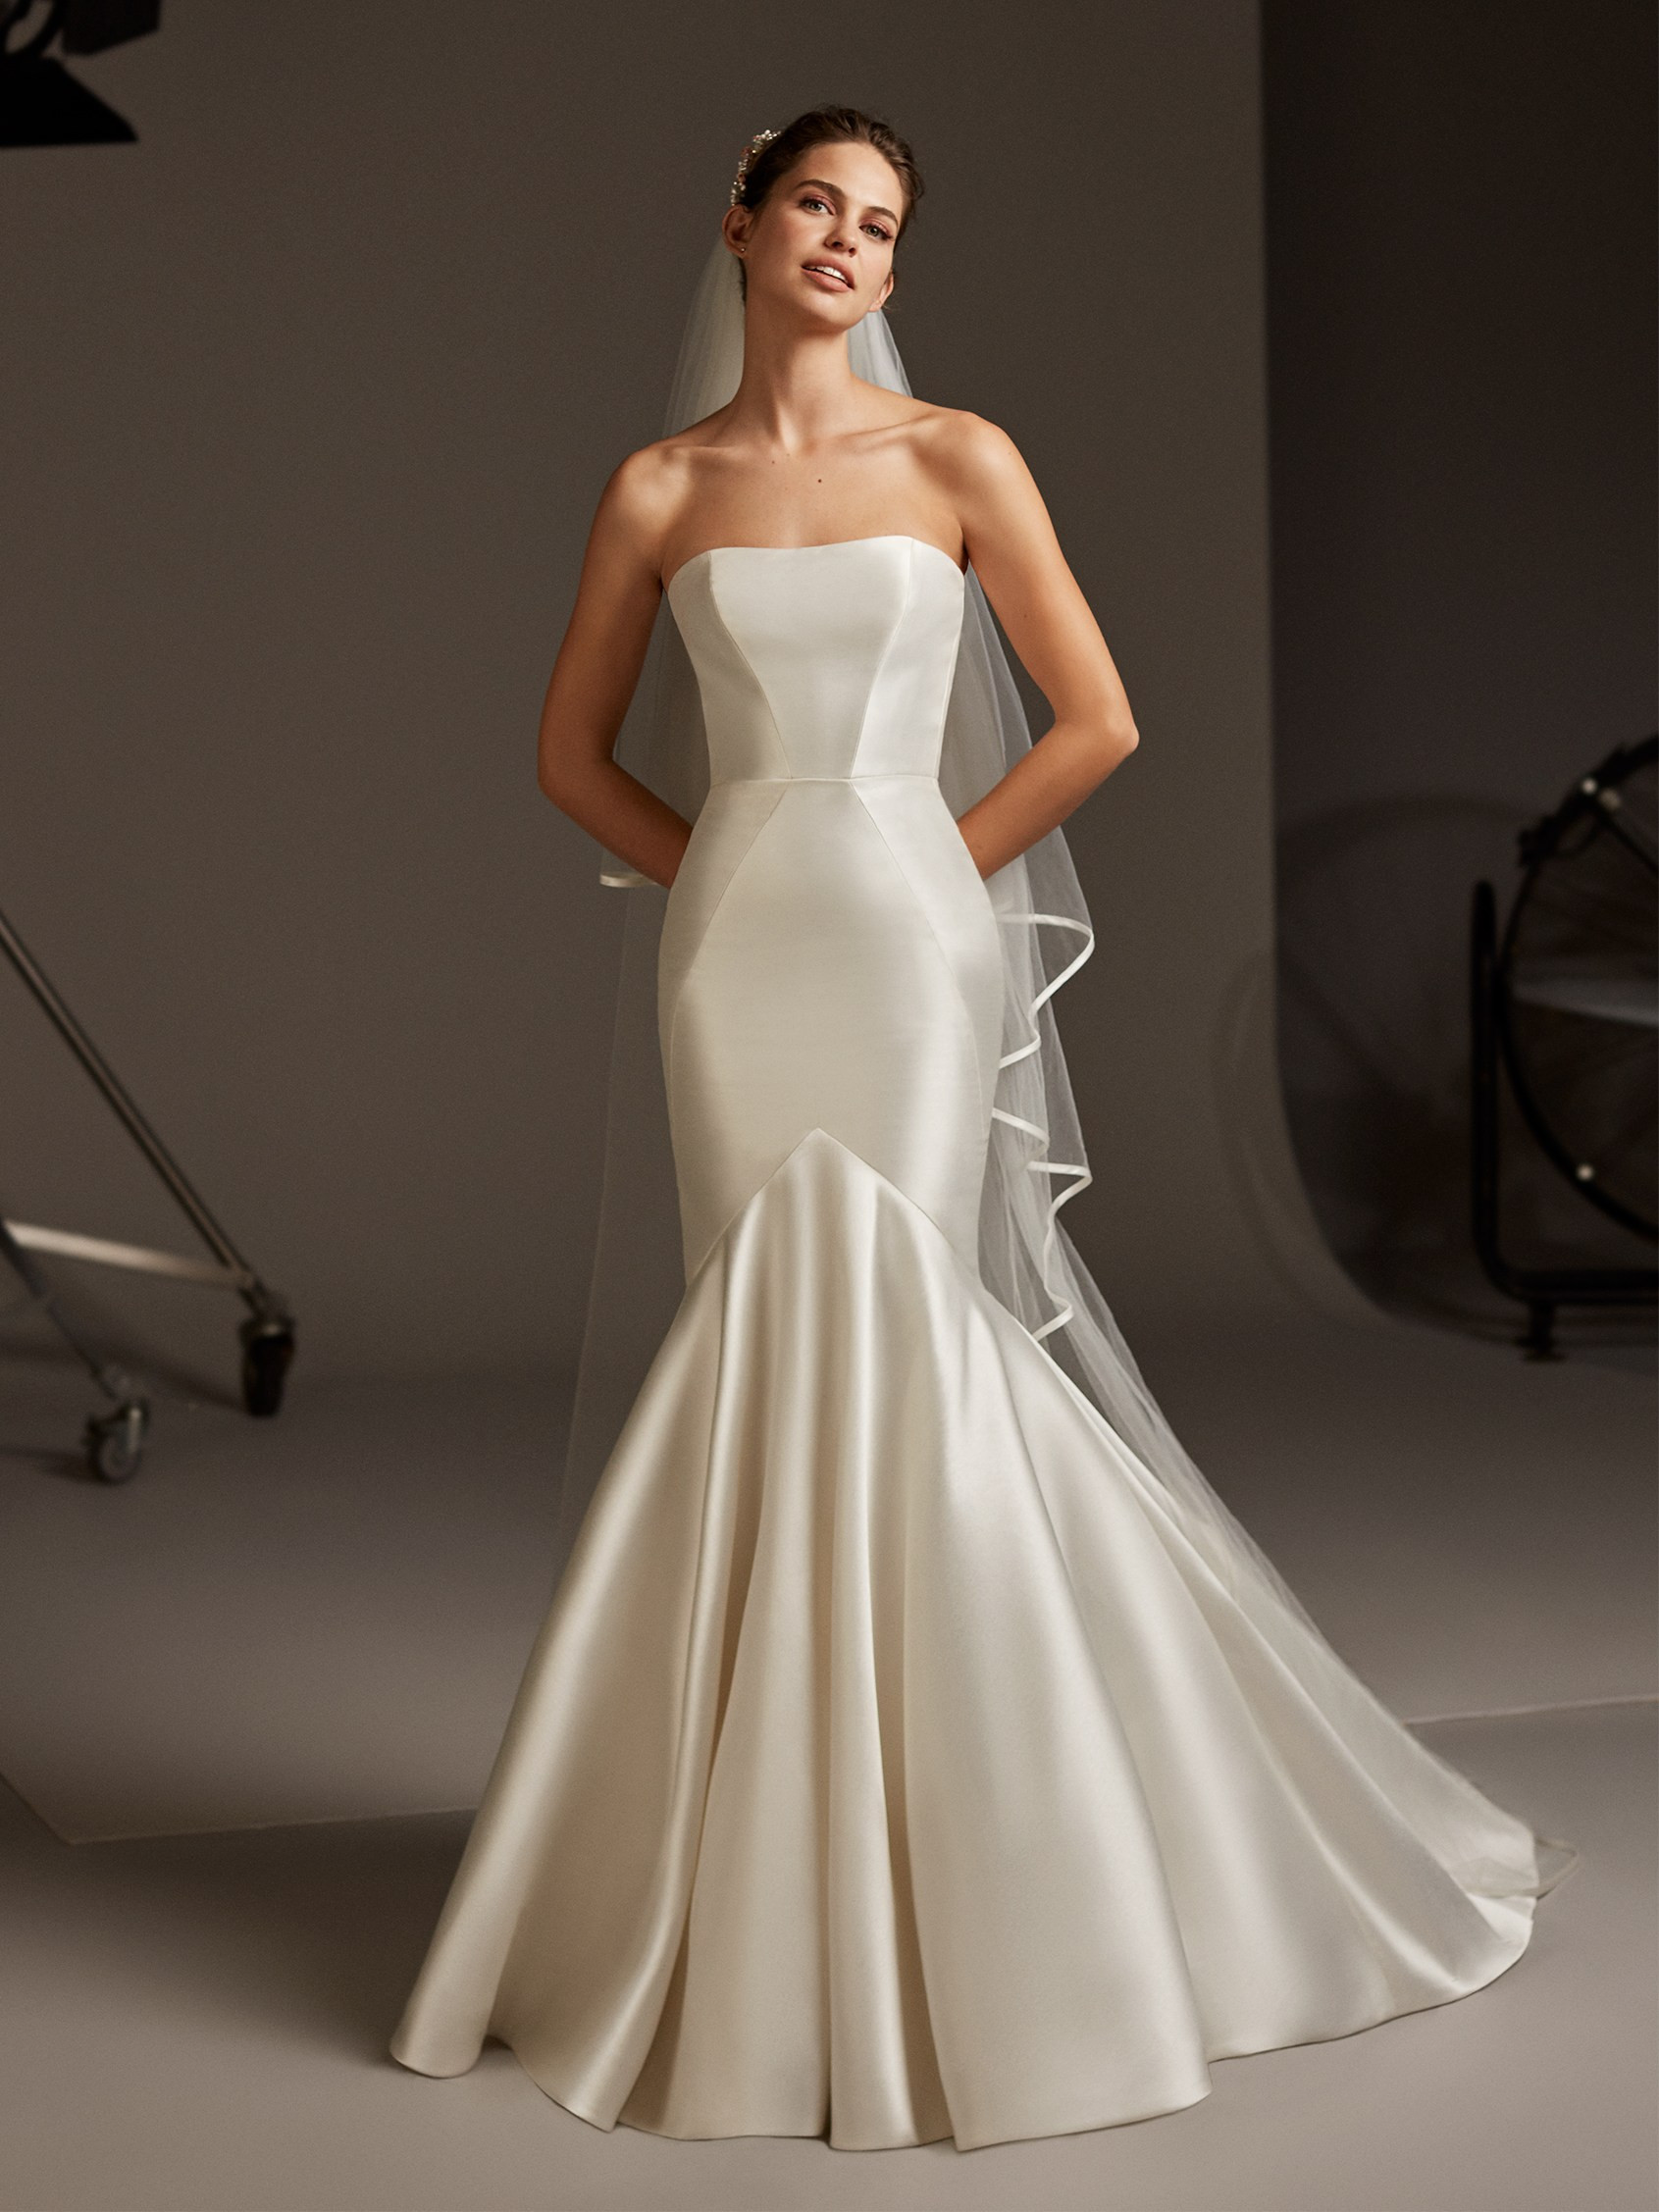 How To Accessorize A Strapless Dress Kleinfeld Bridal